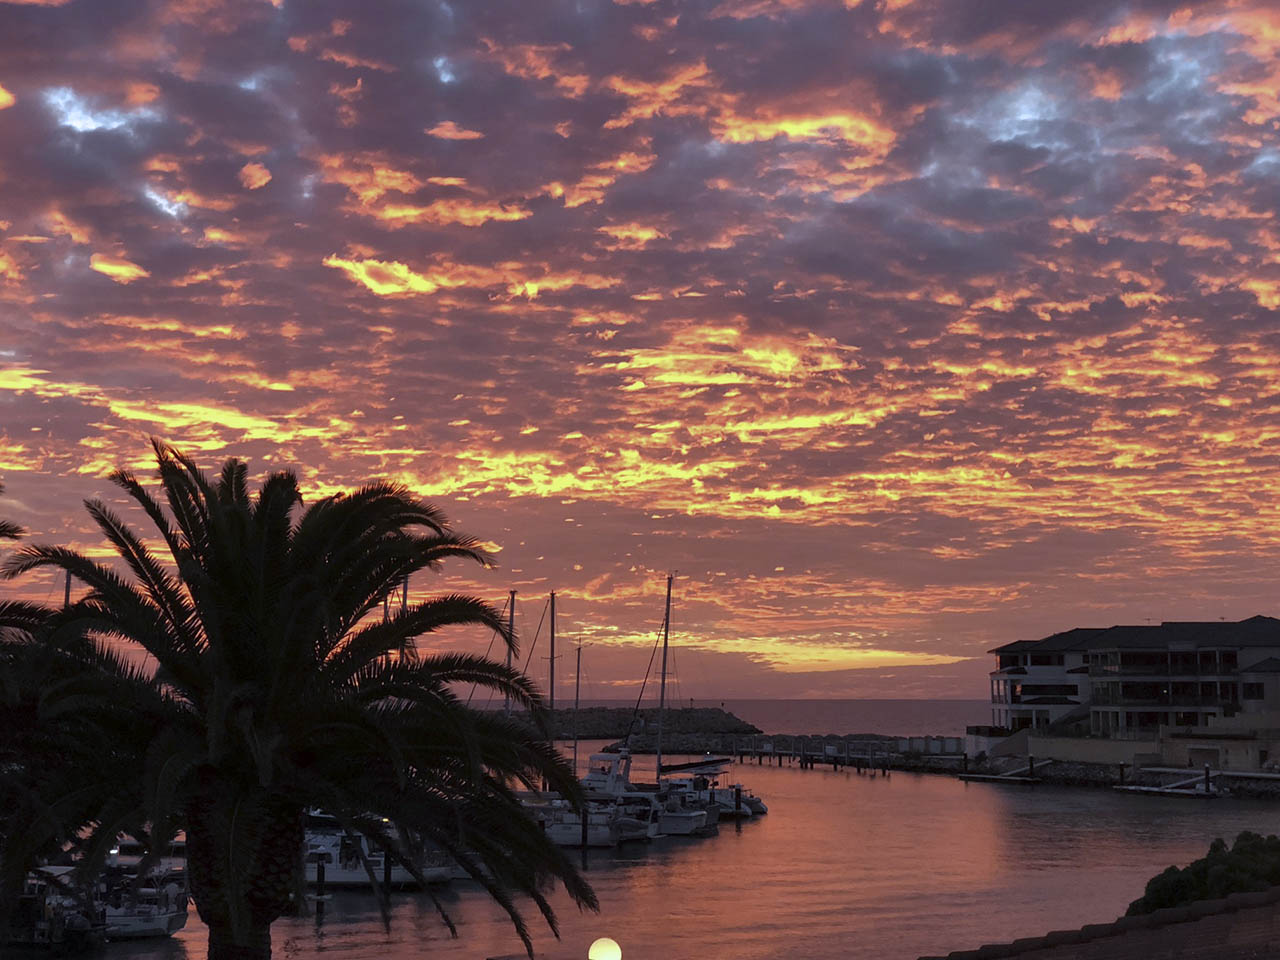 The Marina At Sunset With A Palm Tree In The Foreground And Backdrop Of The Sea.